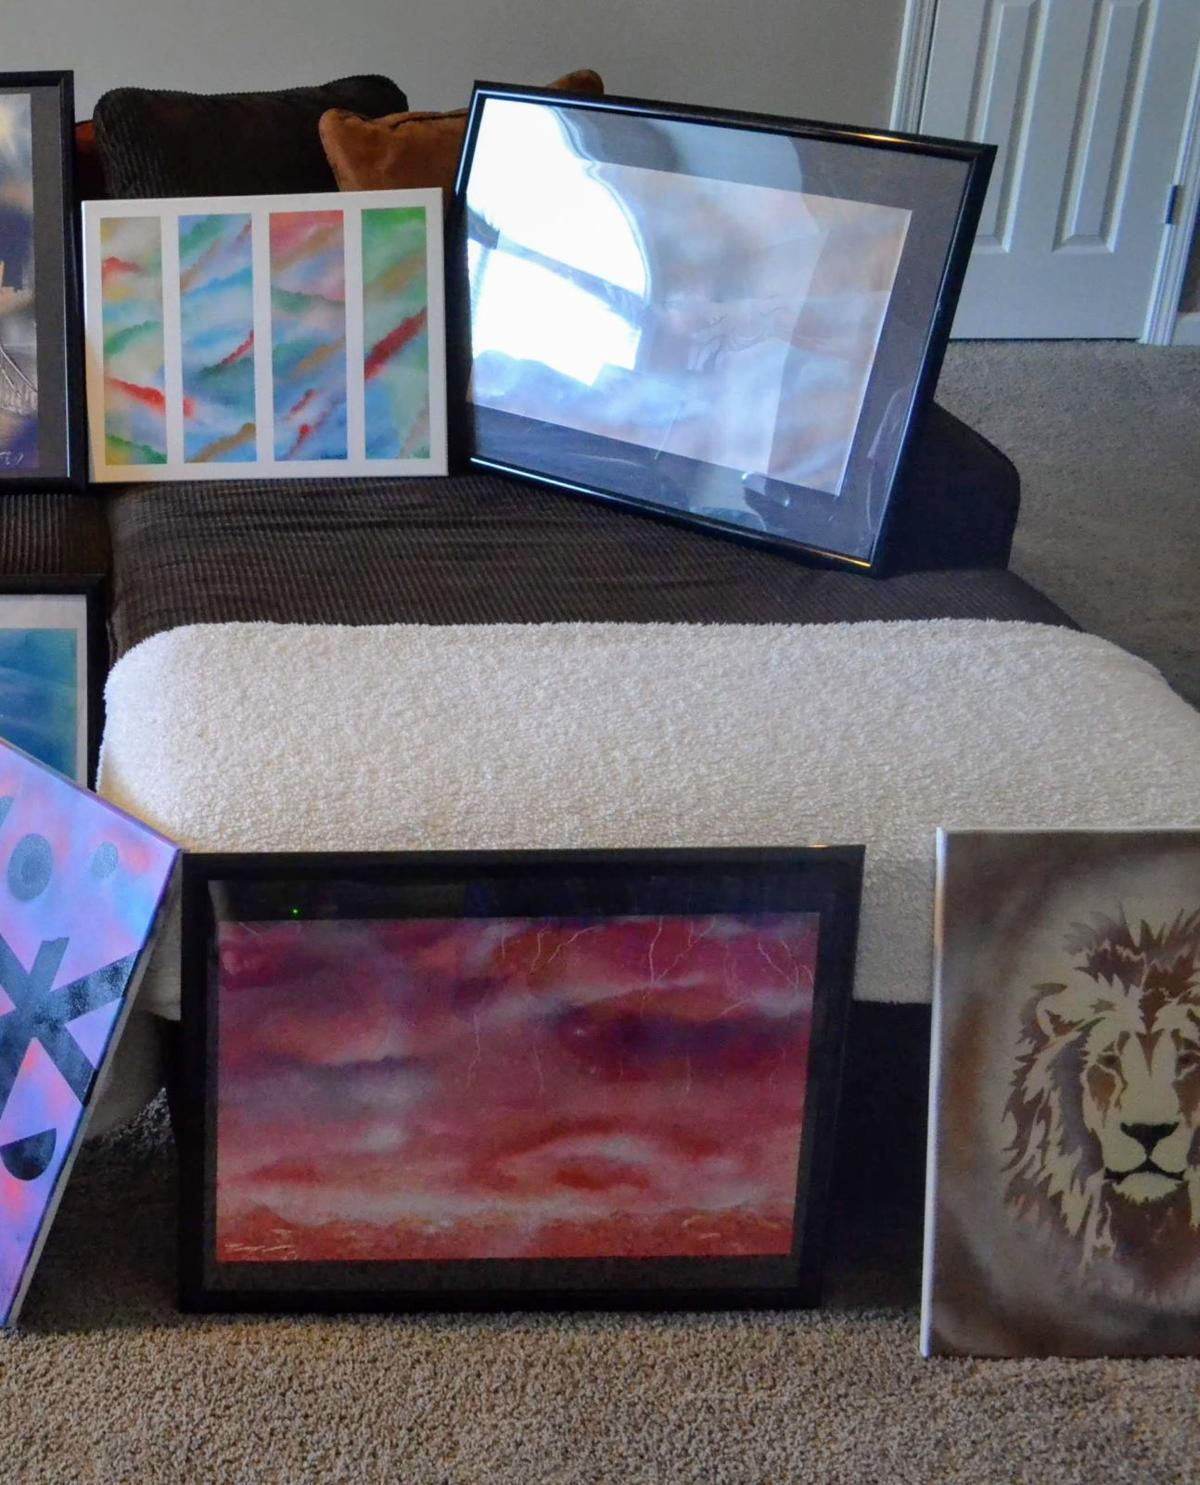 Art in the Summer exhibit will feature two local artists